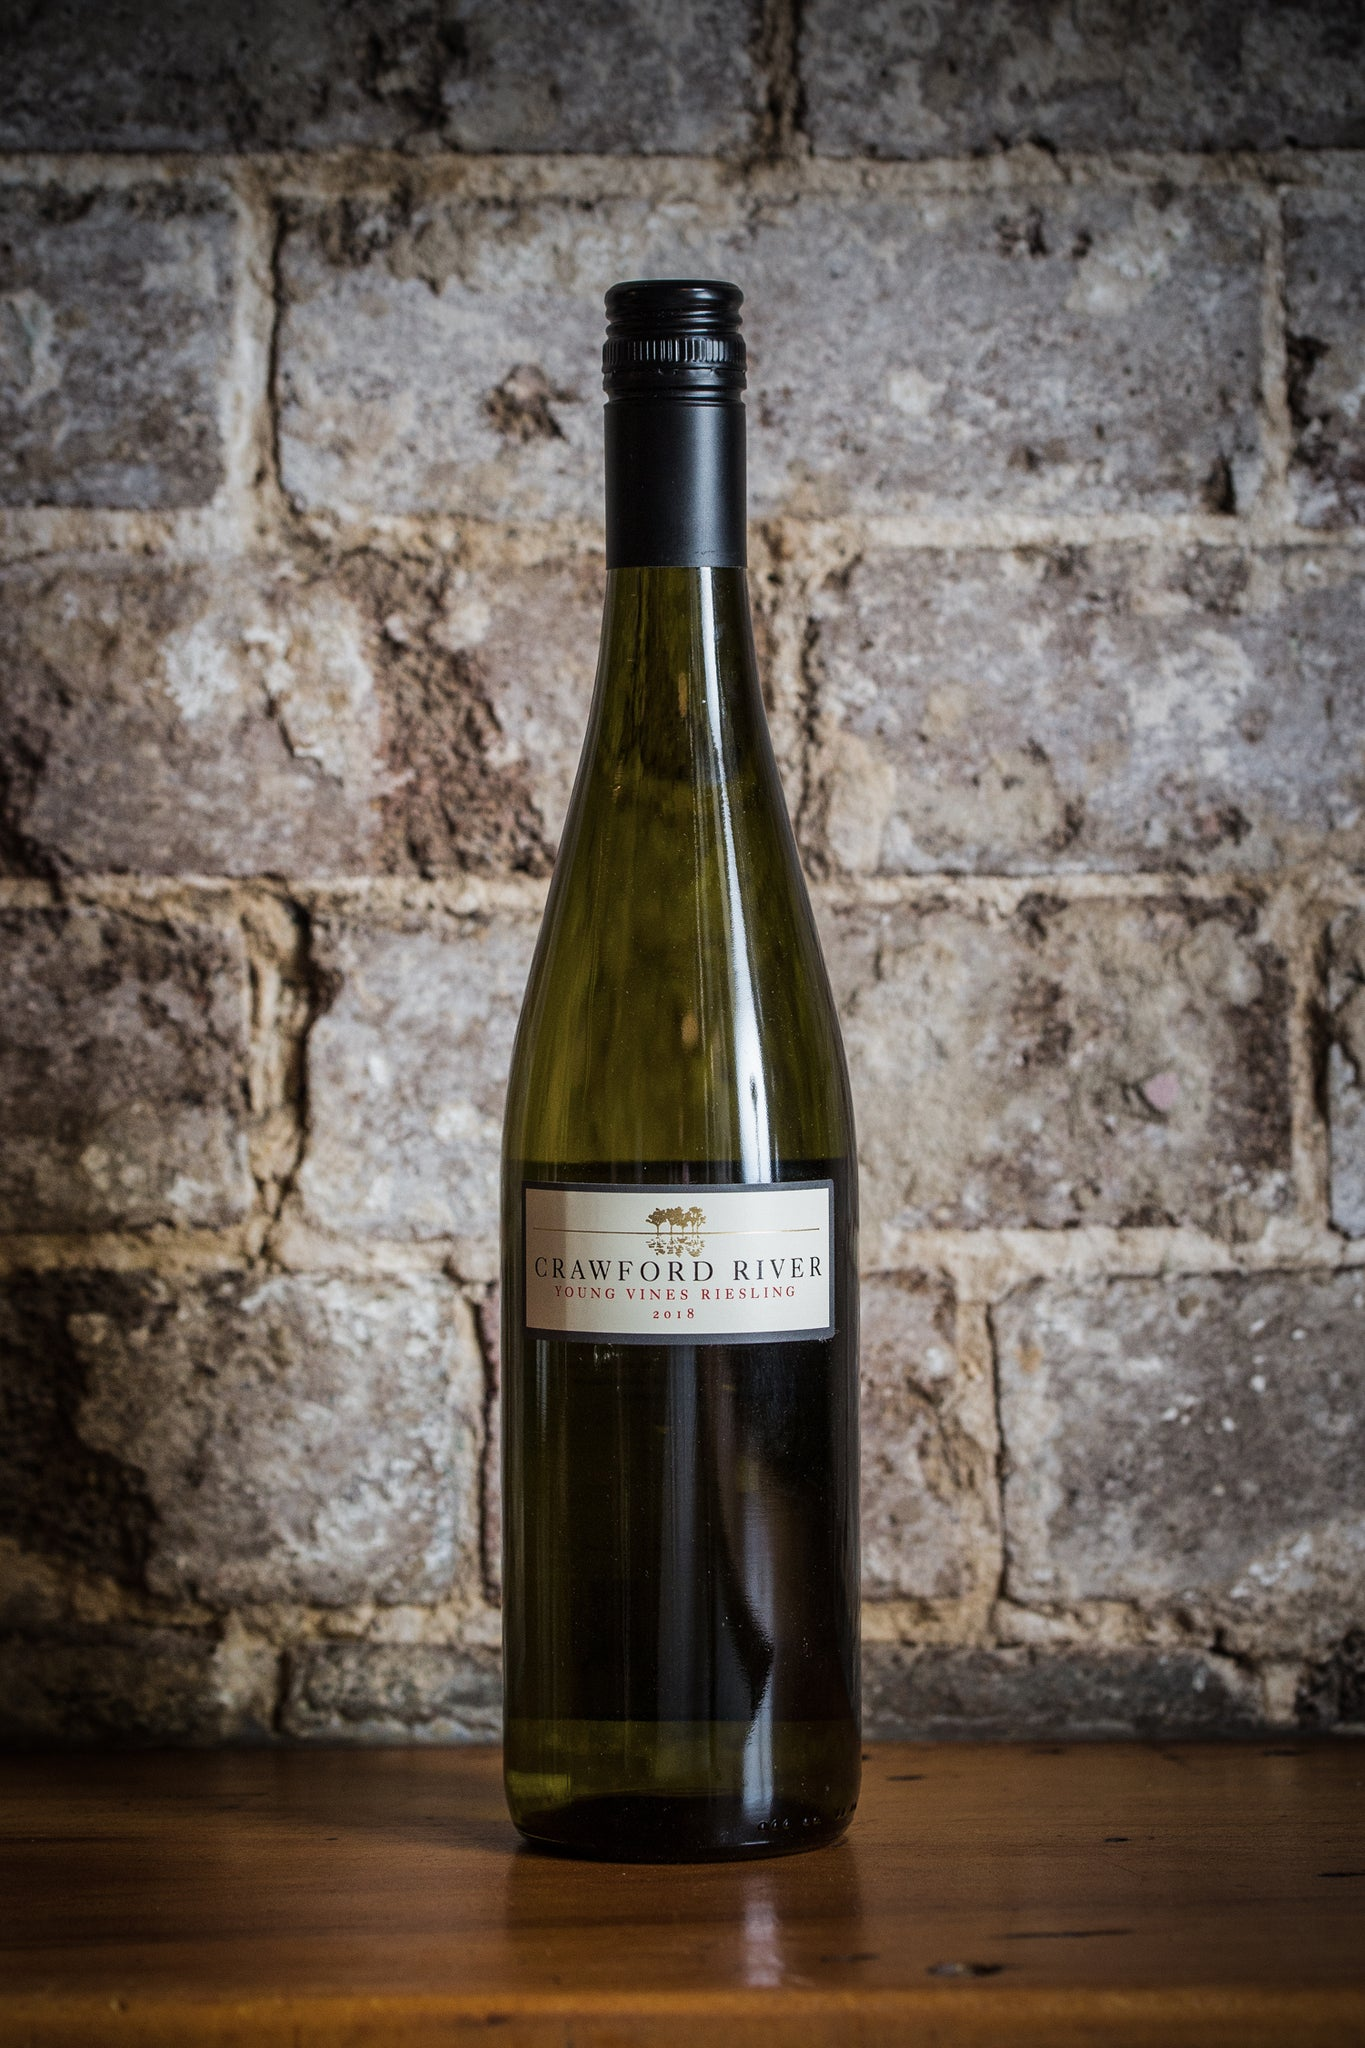 2018 Crawford River 'Young Vines' Riesling